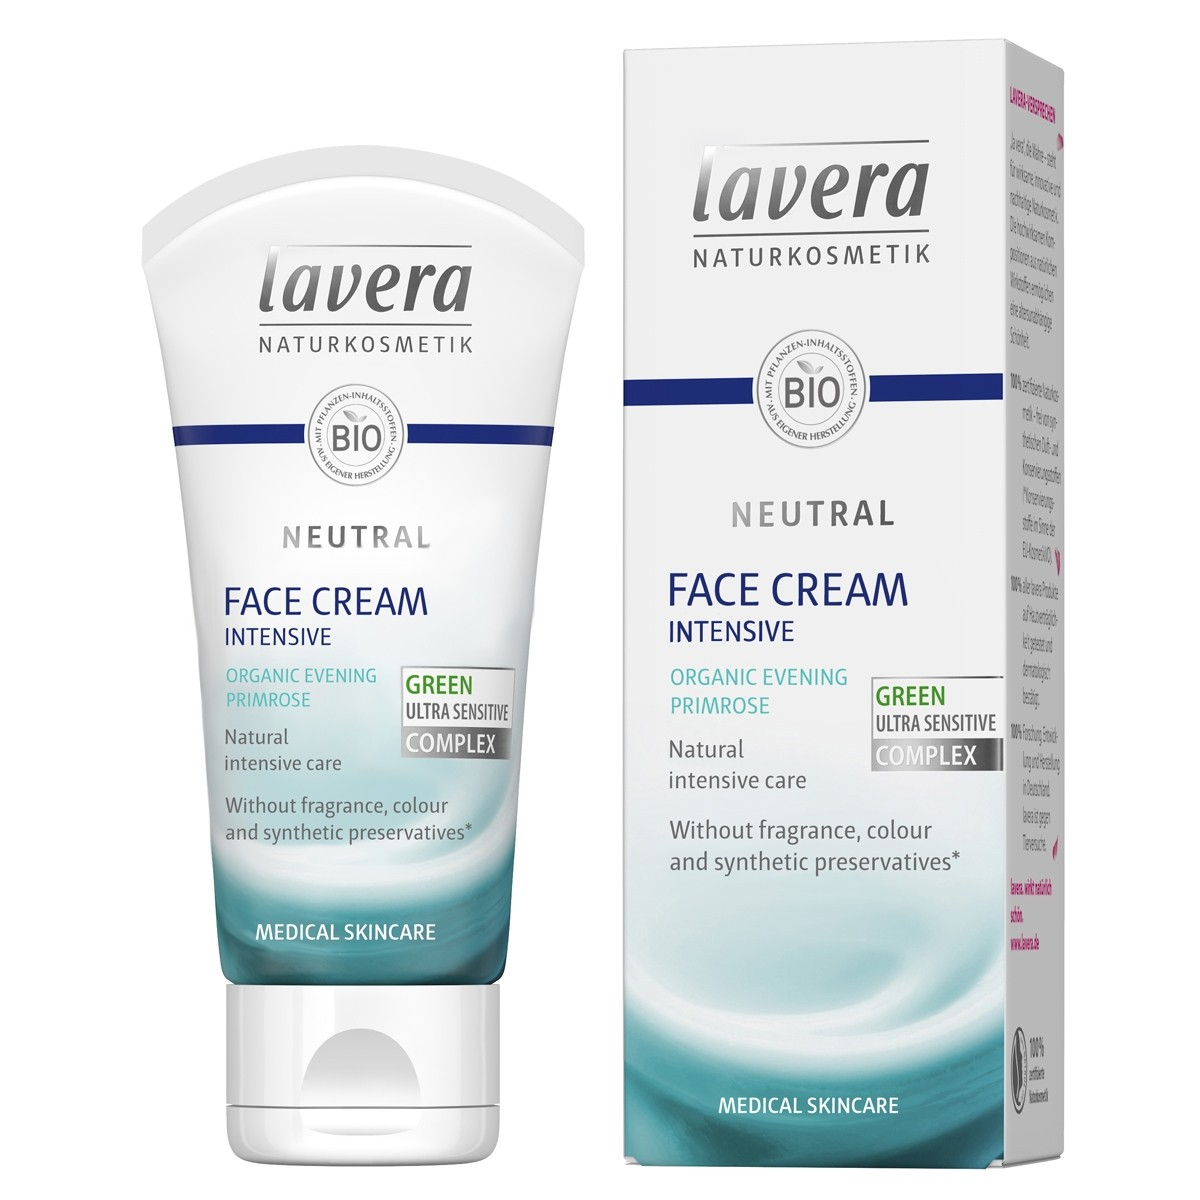 Lavera Neutral Natural Face Cream